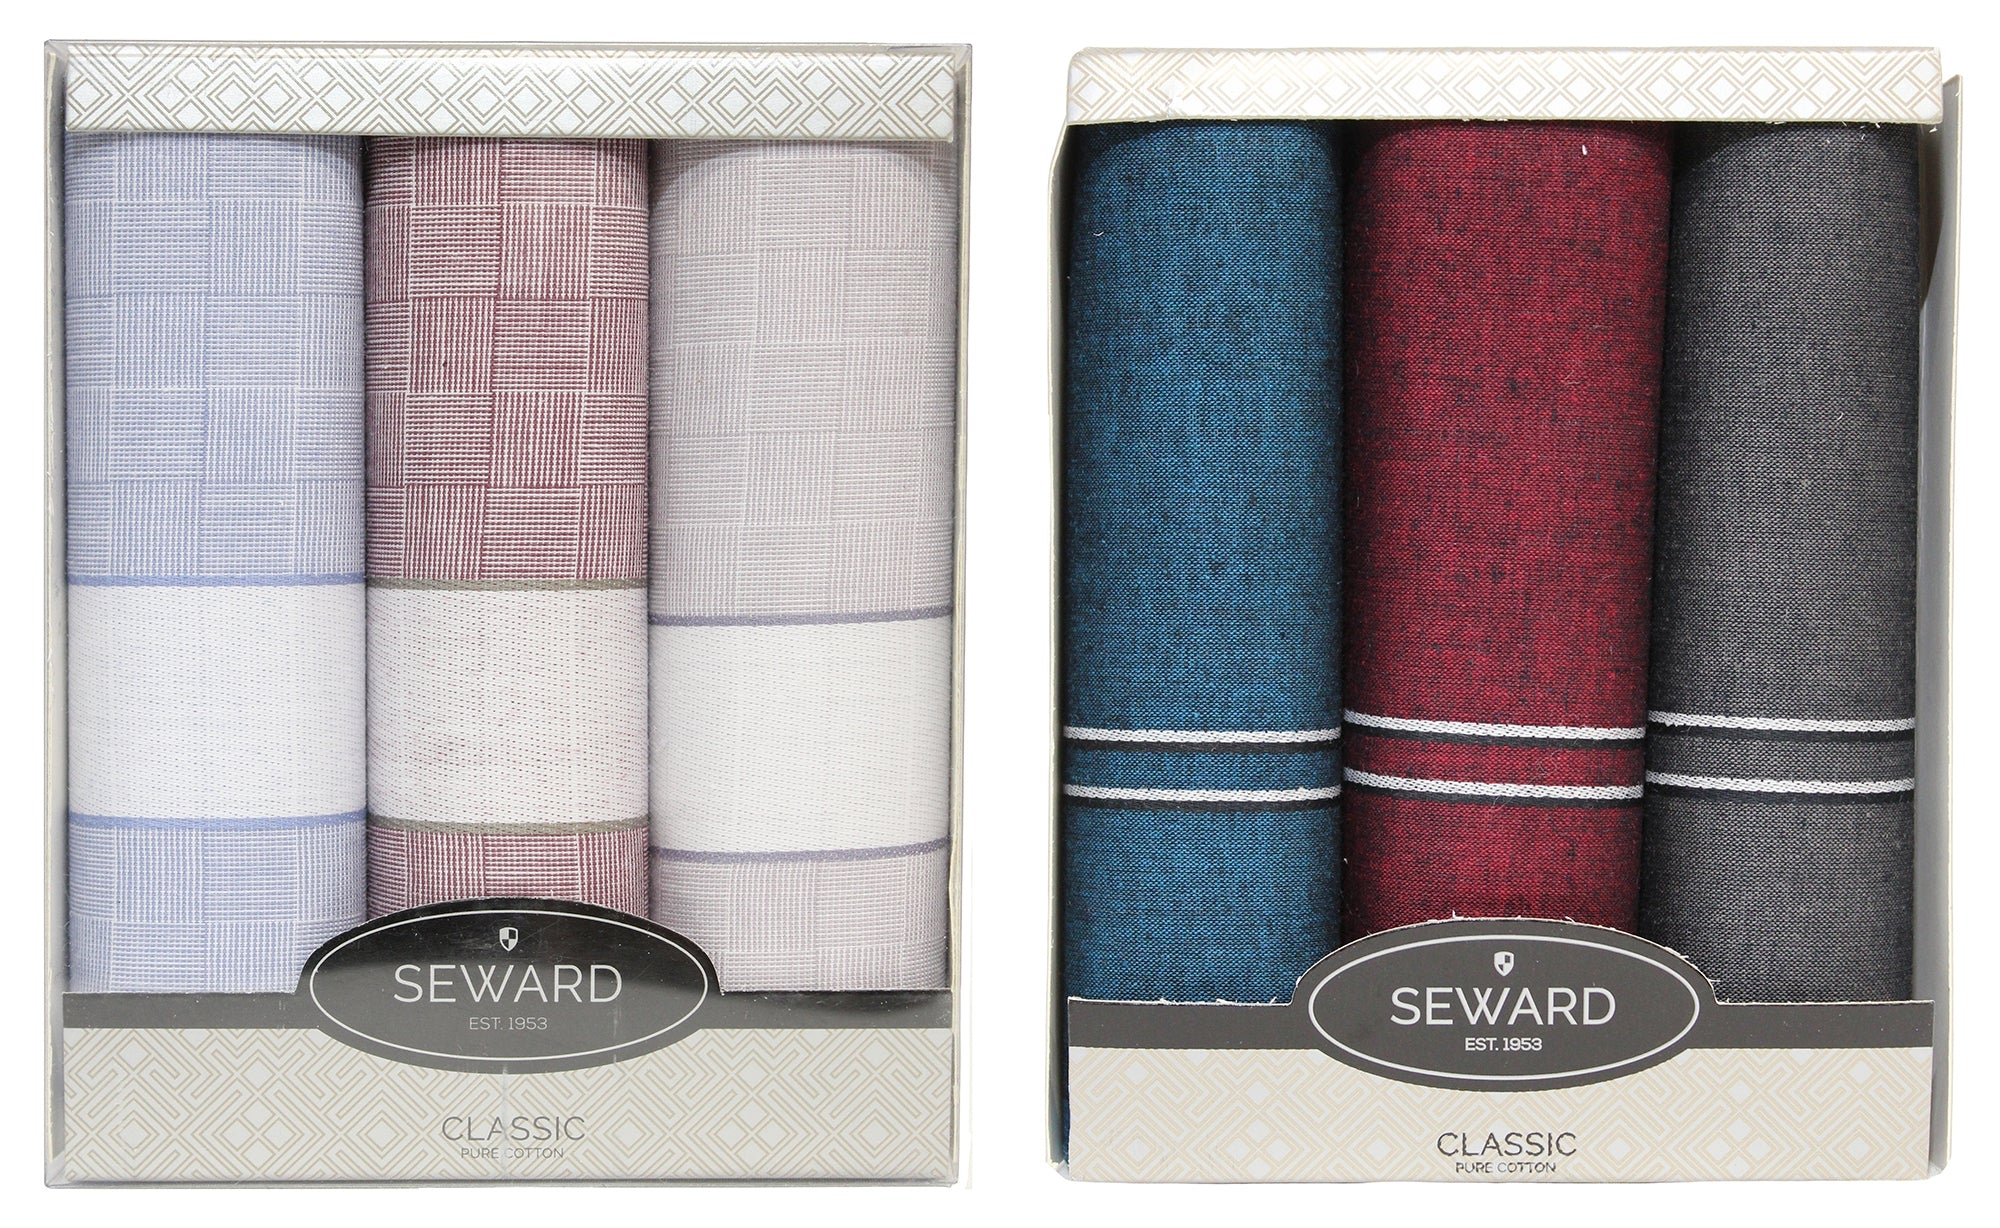 Seward Box of 3 Hanks Classic Woven